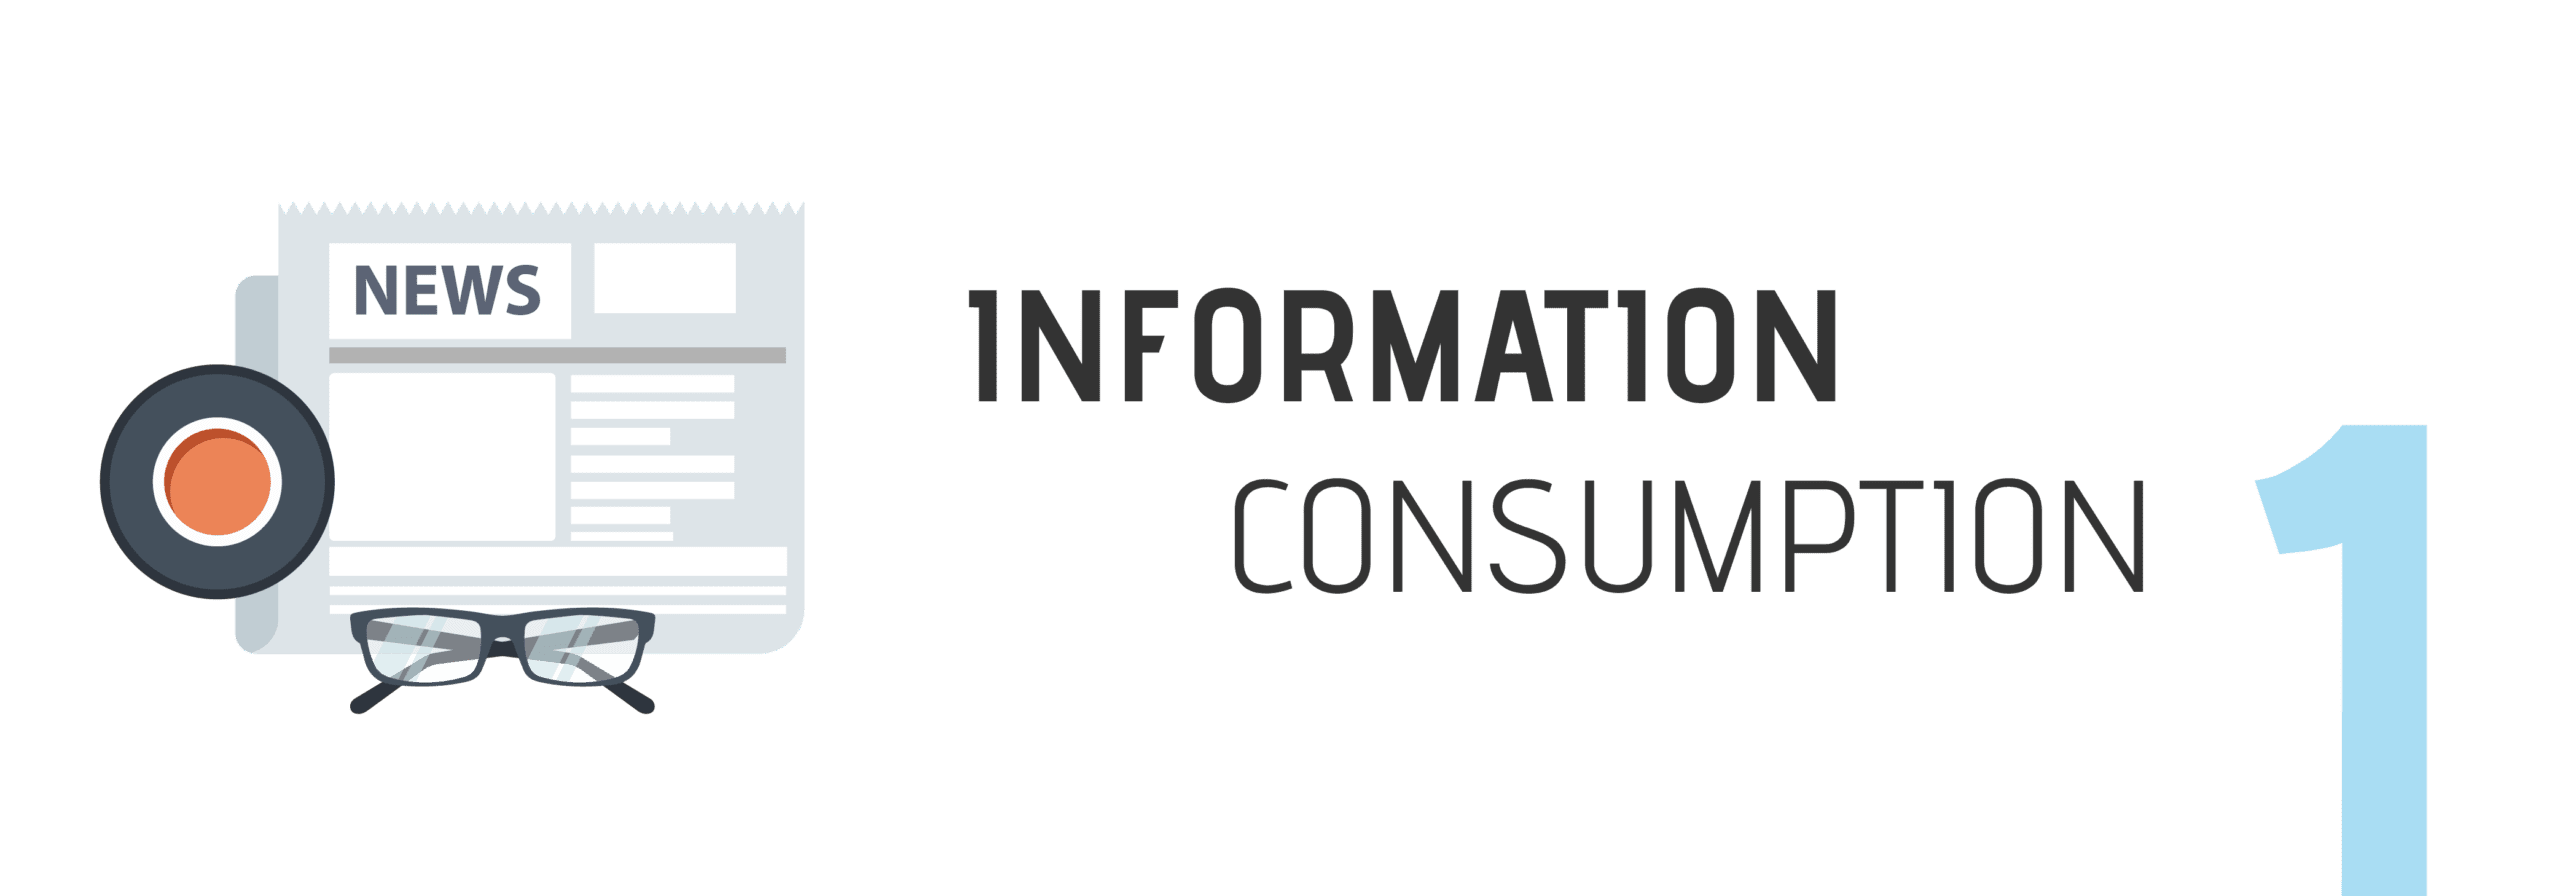 Information Consumption Benefit, Snippet Photo